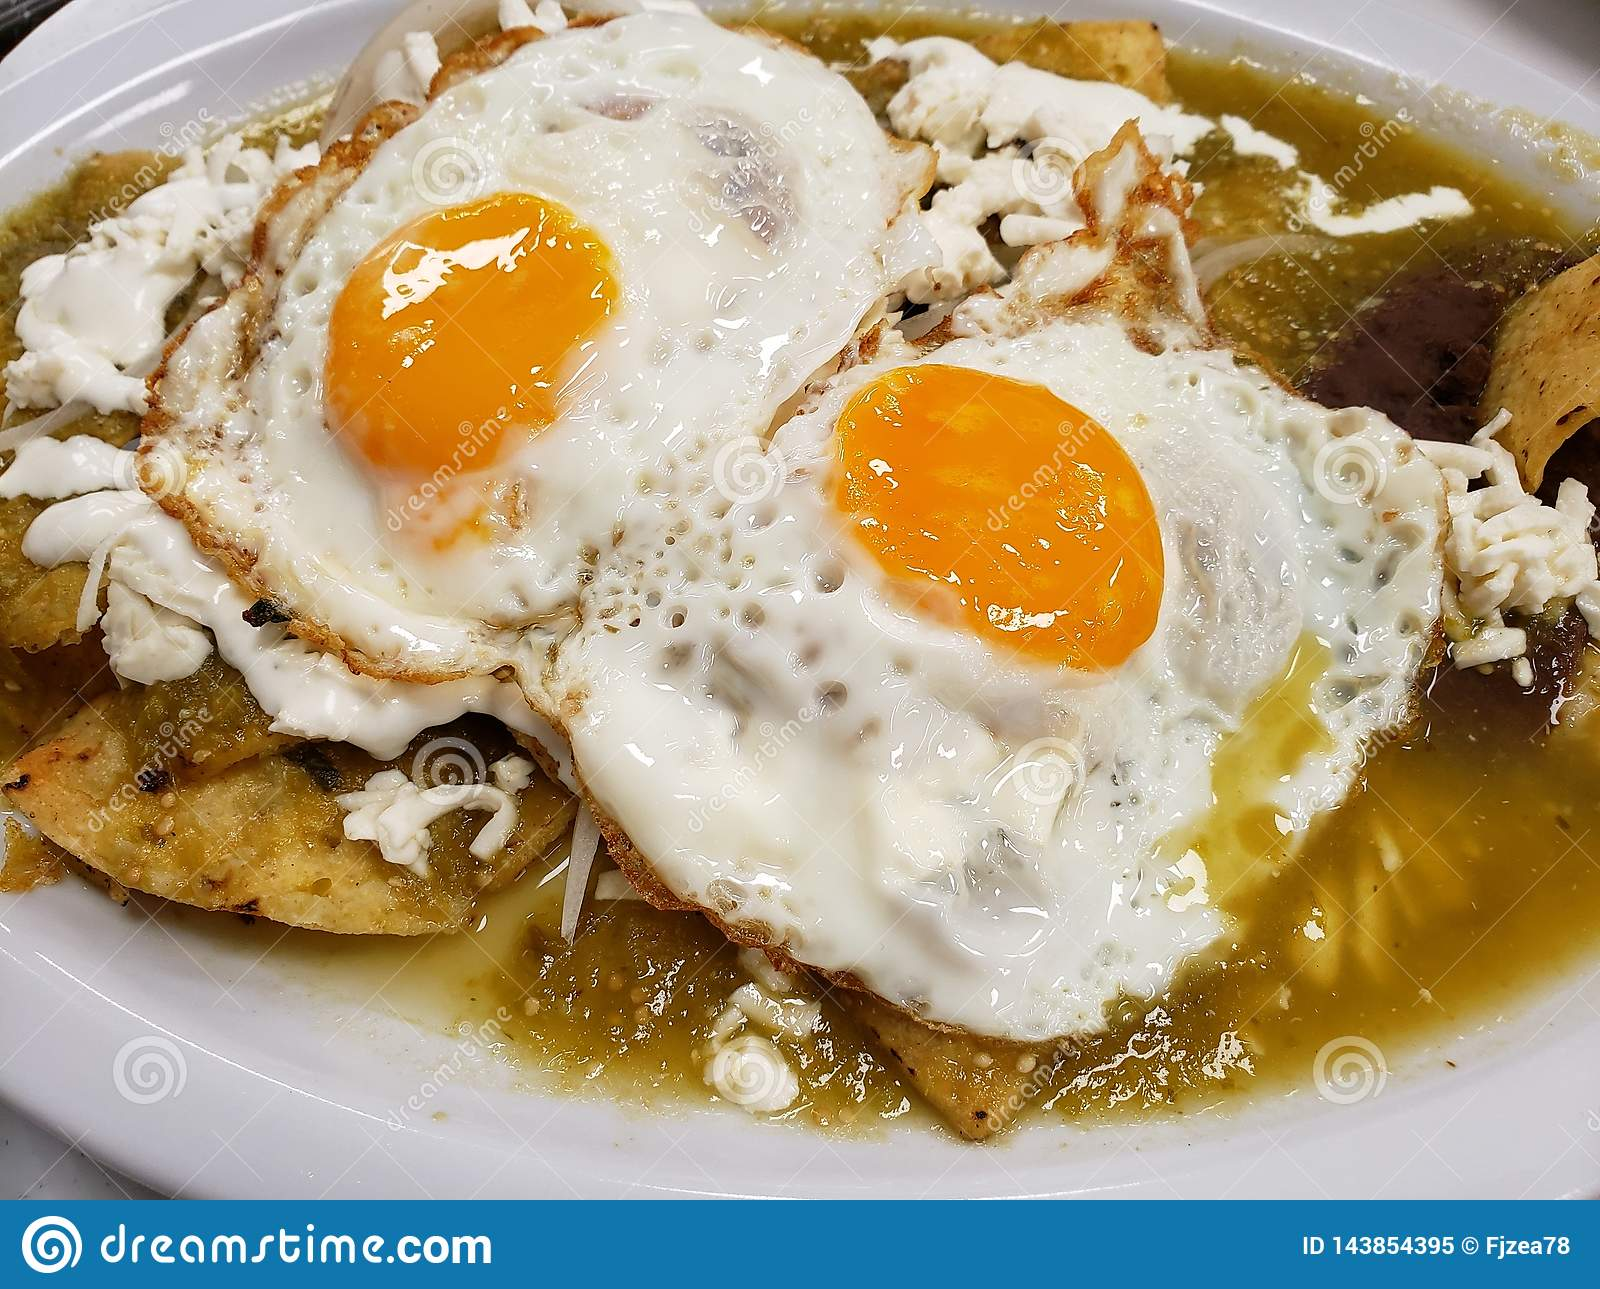 chilaquiles dish with fried egg for lunch, traditional mexican food